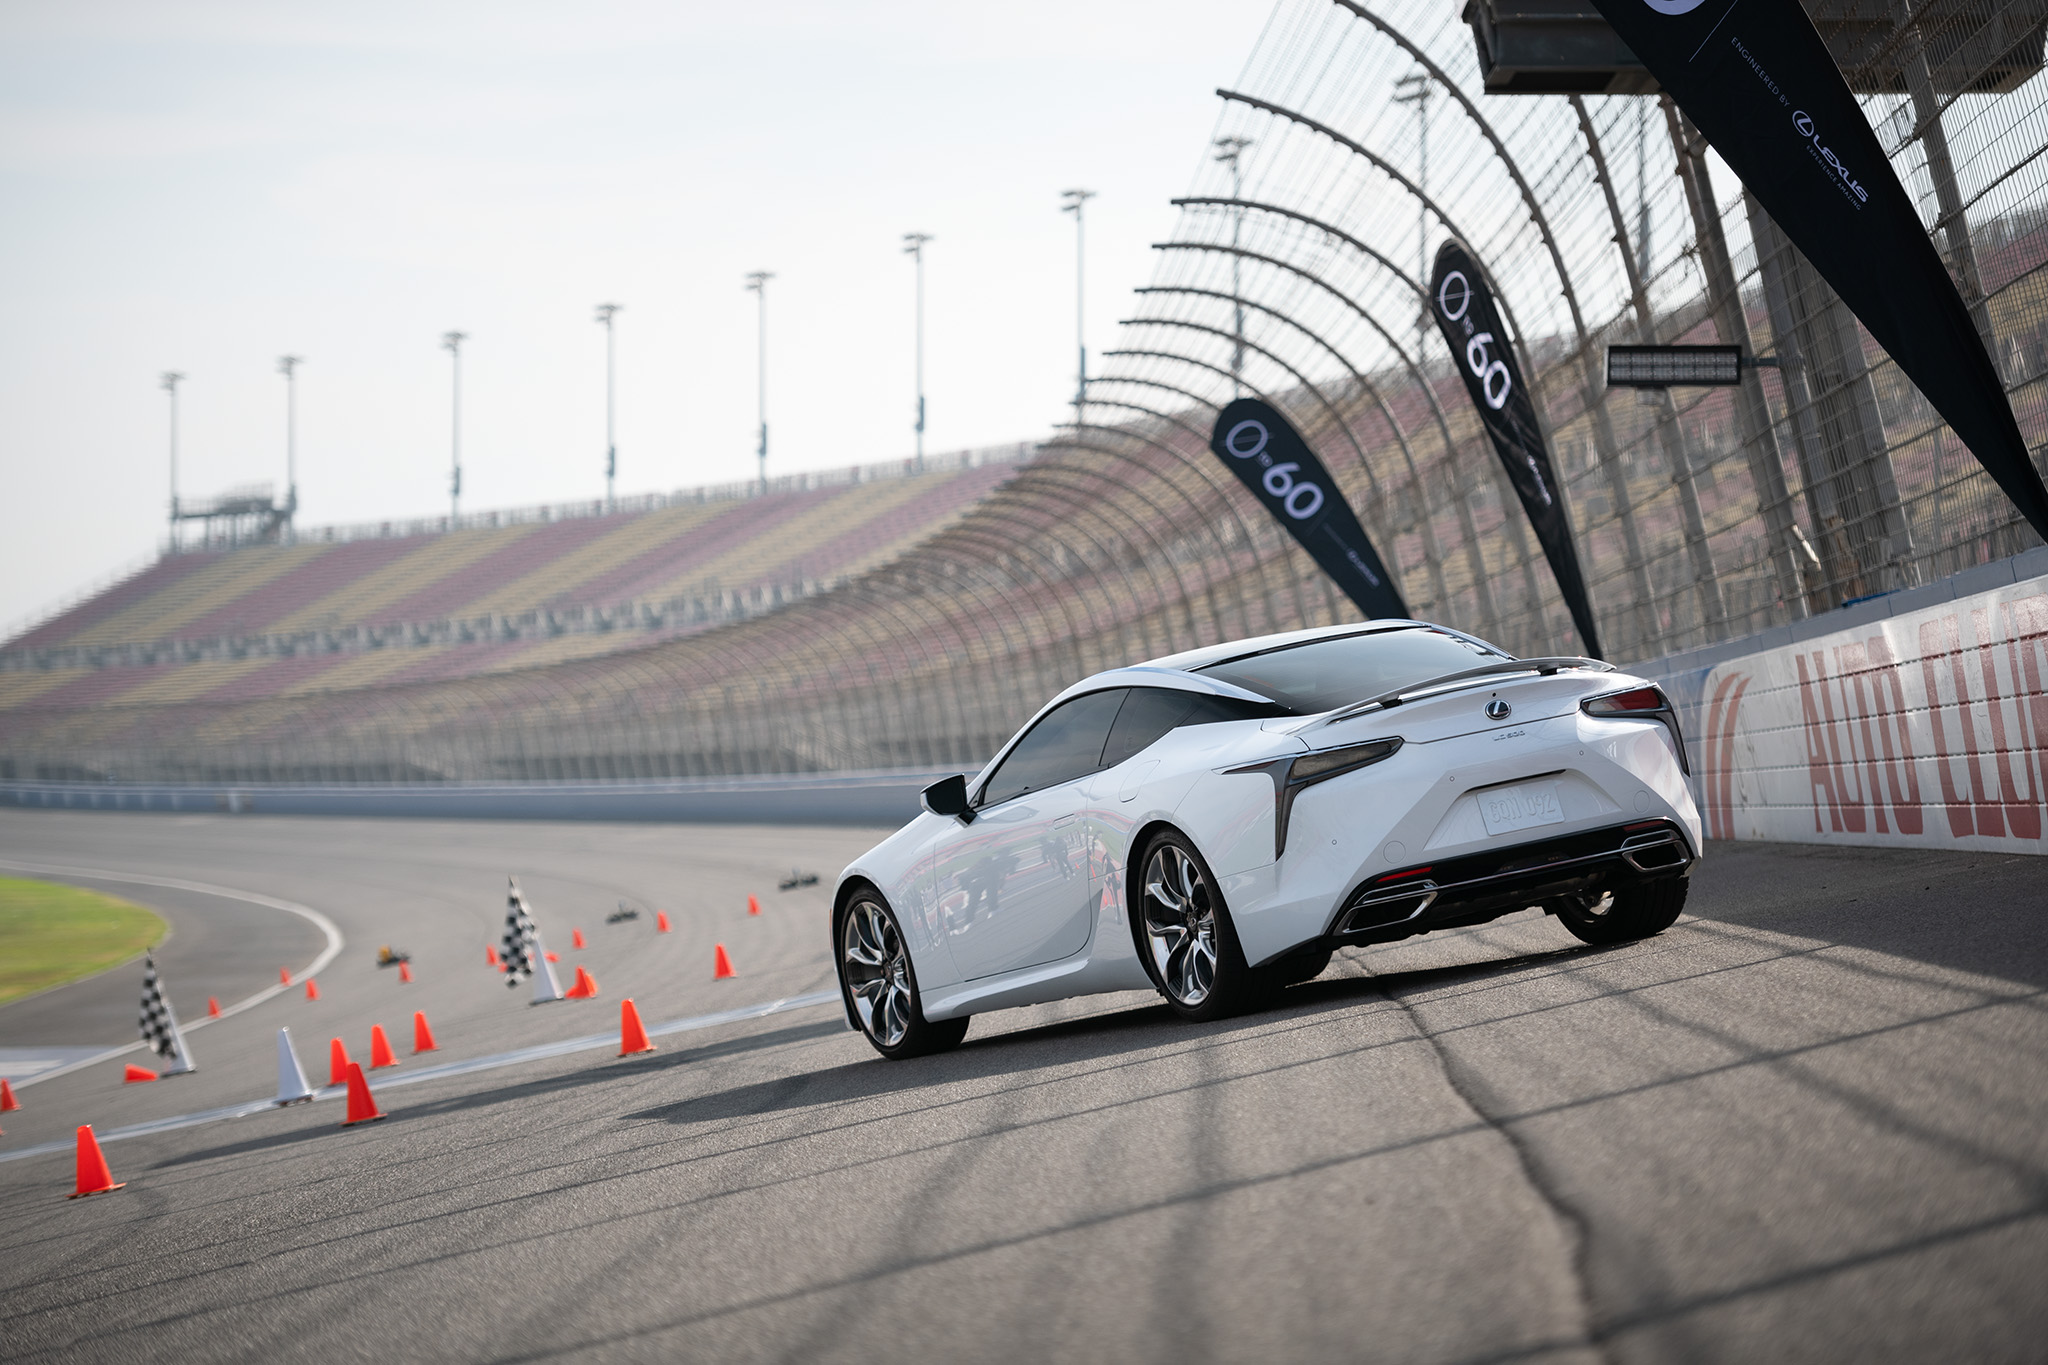 Lexus LC 500 0 to 60 campaign at Auto Club Speedway Fontana, motorsports photography by Luke Munnell